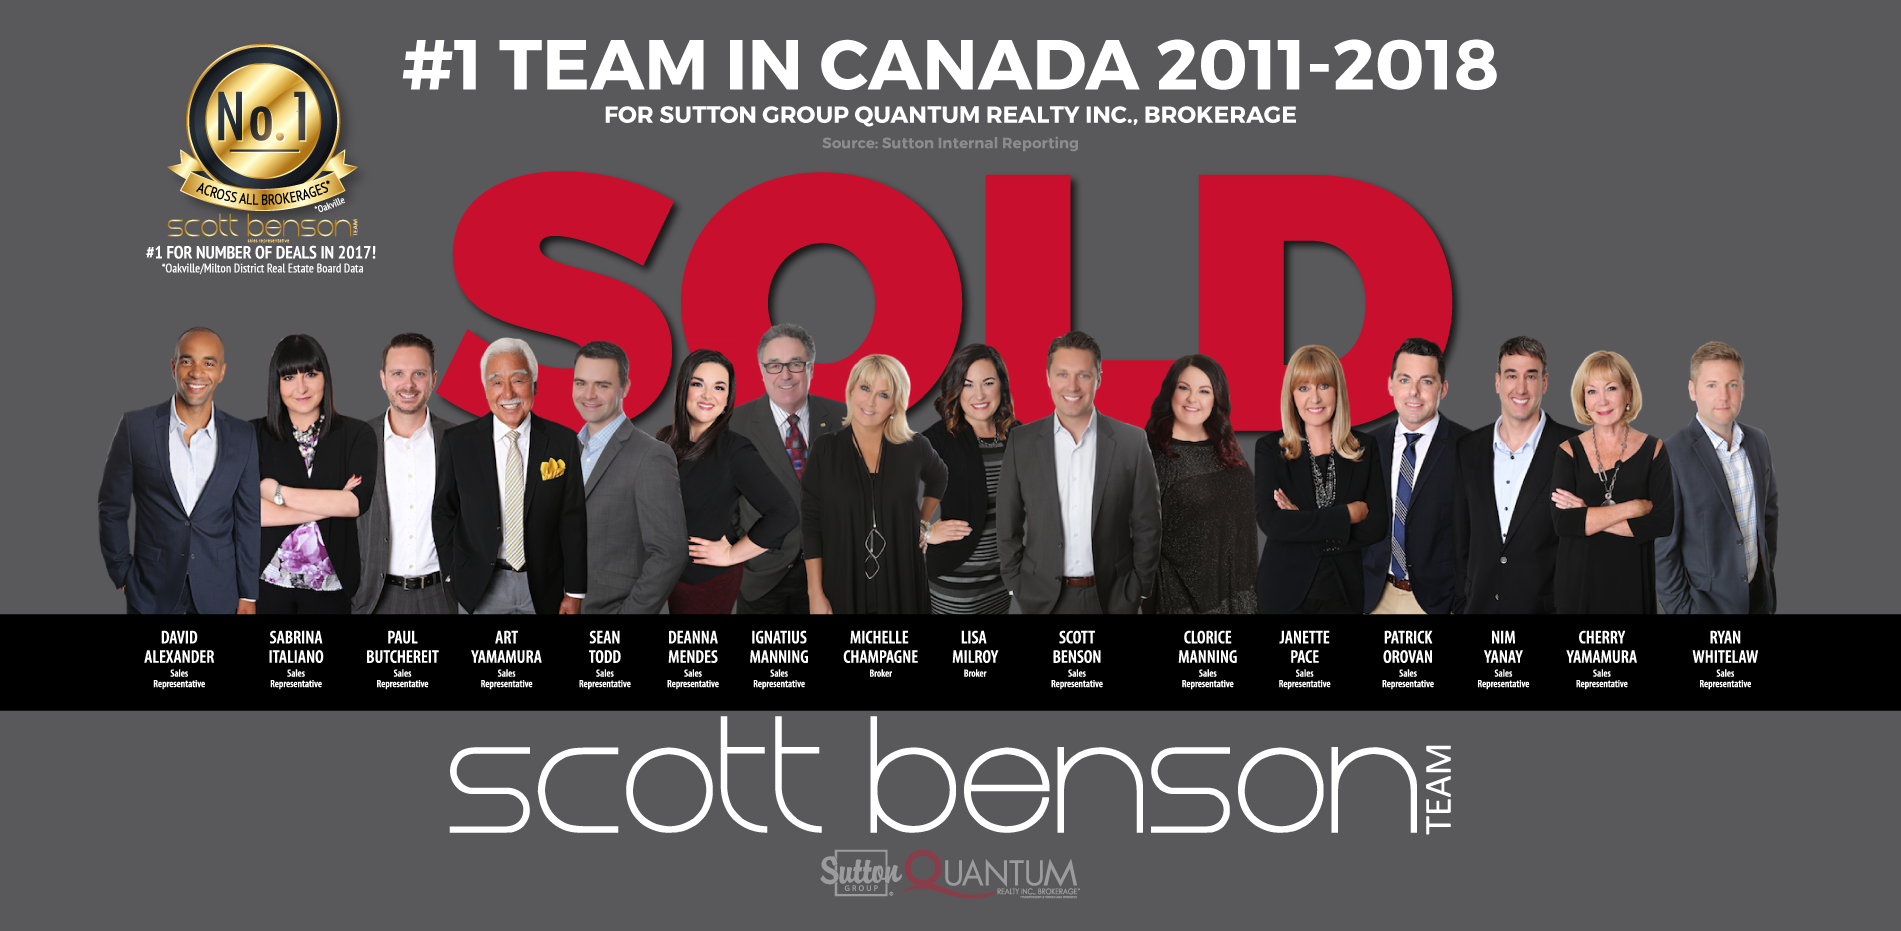 The Scott Benson Team